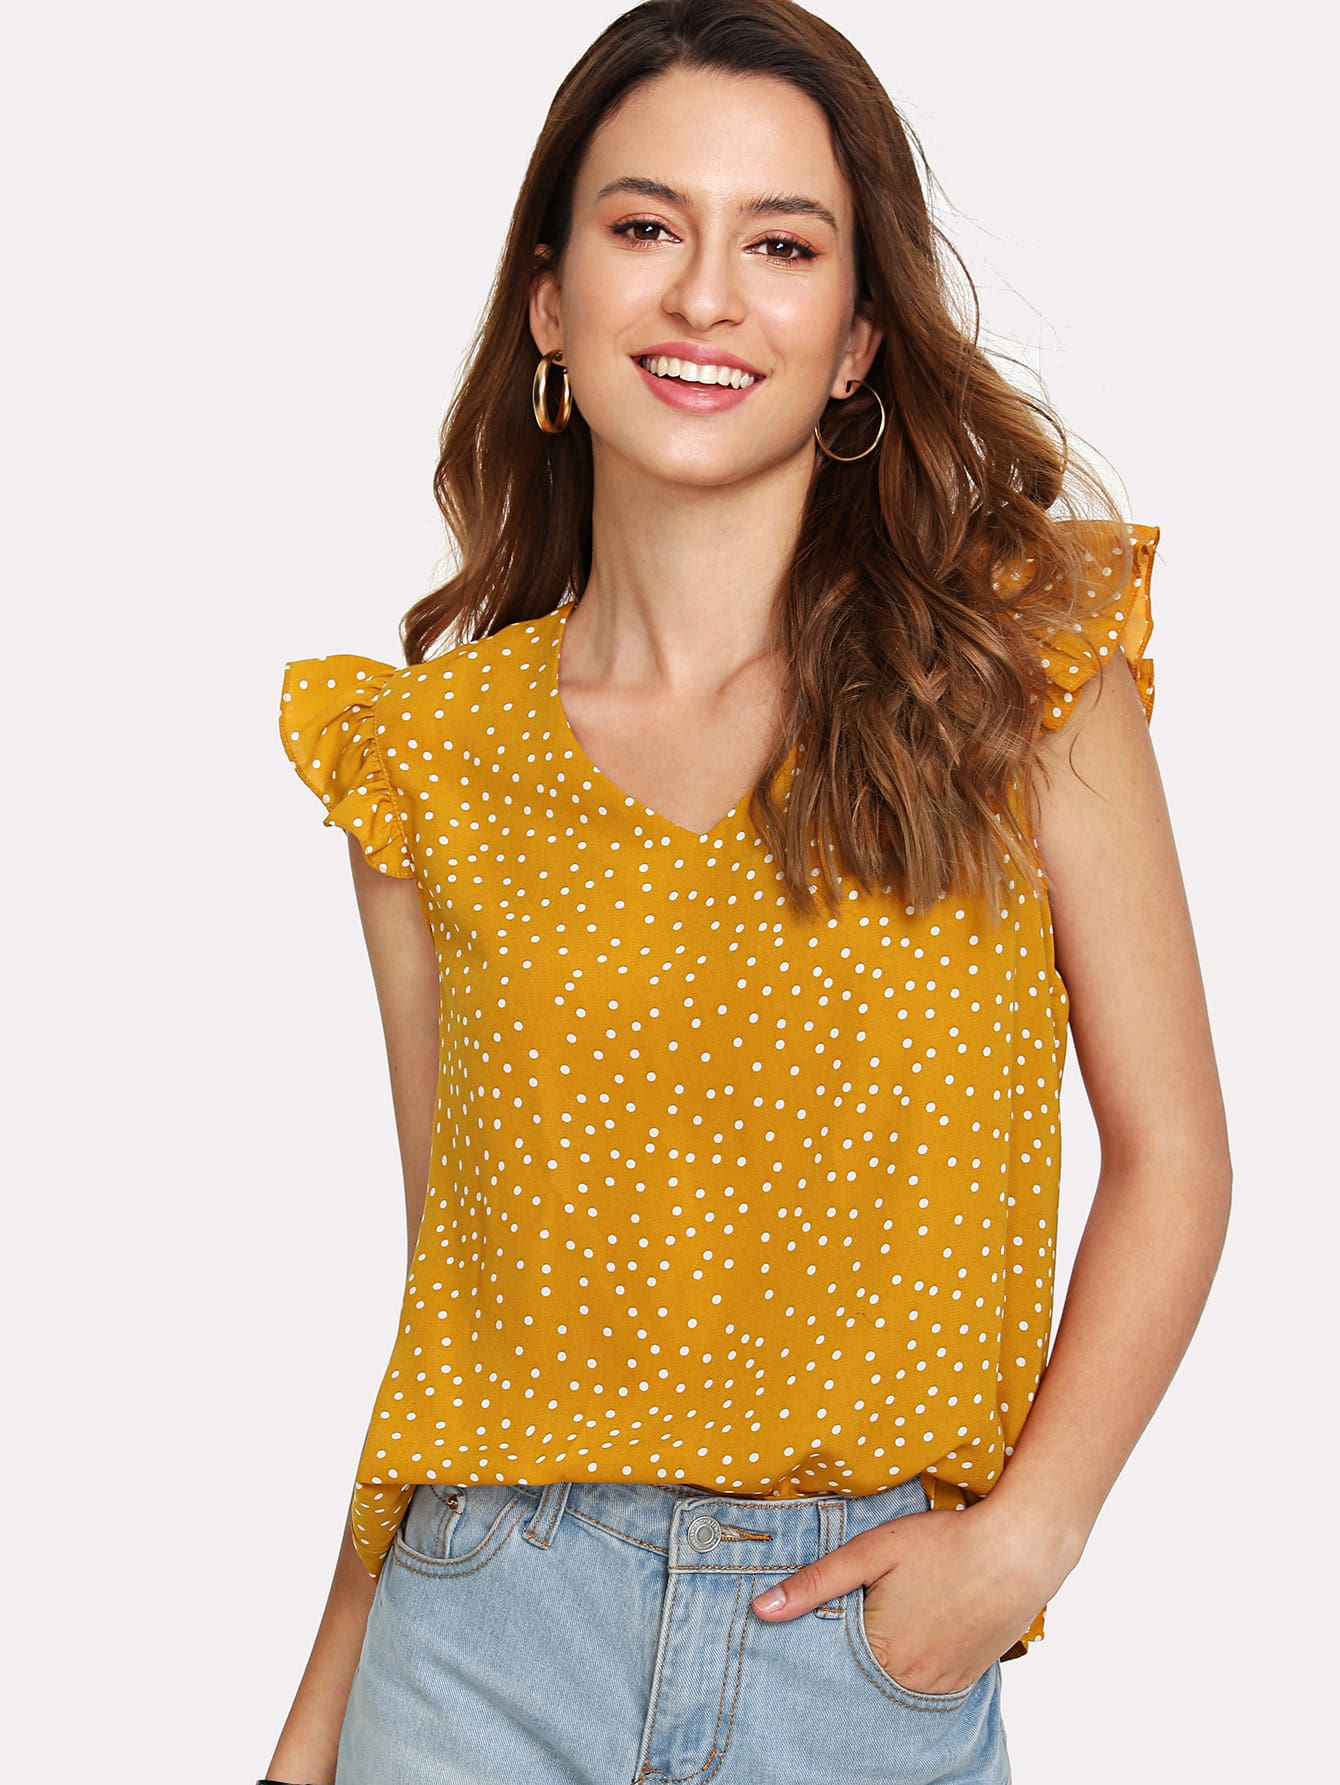 Ruffle Armhole Tie Back Polka Dot Top ruffle armhole tie back polka dot top